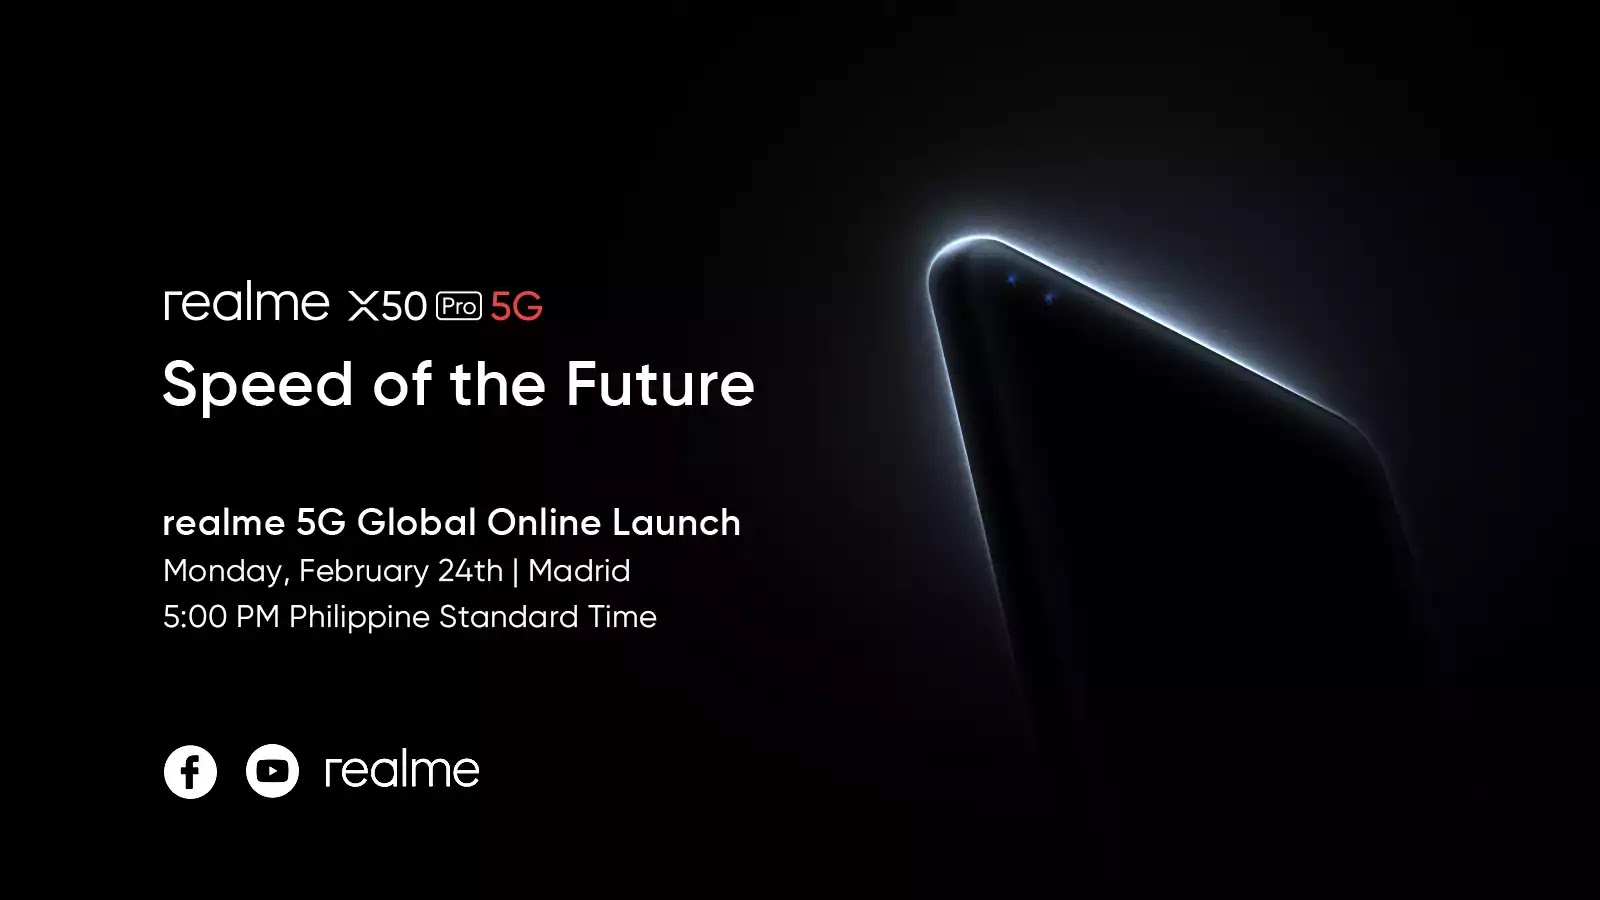 realme X50 Pro 5G Live Stream Announcement